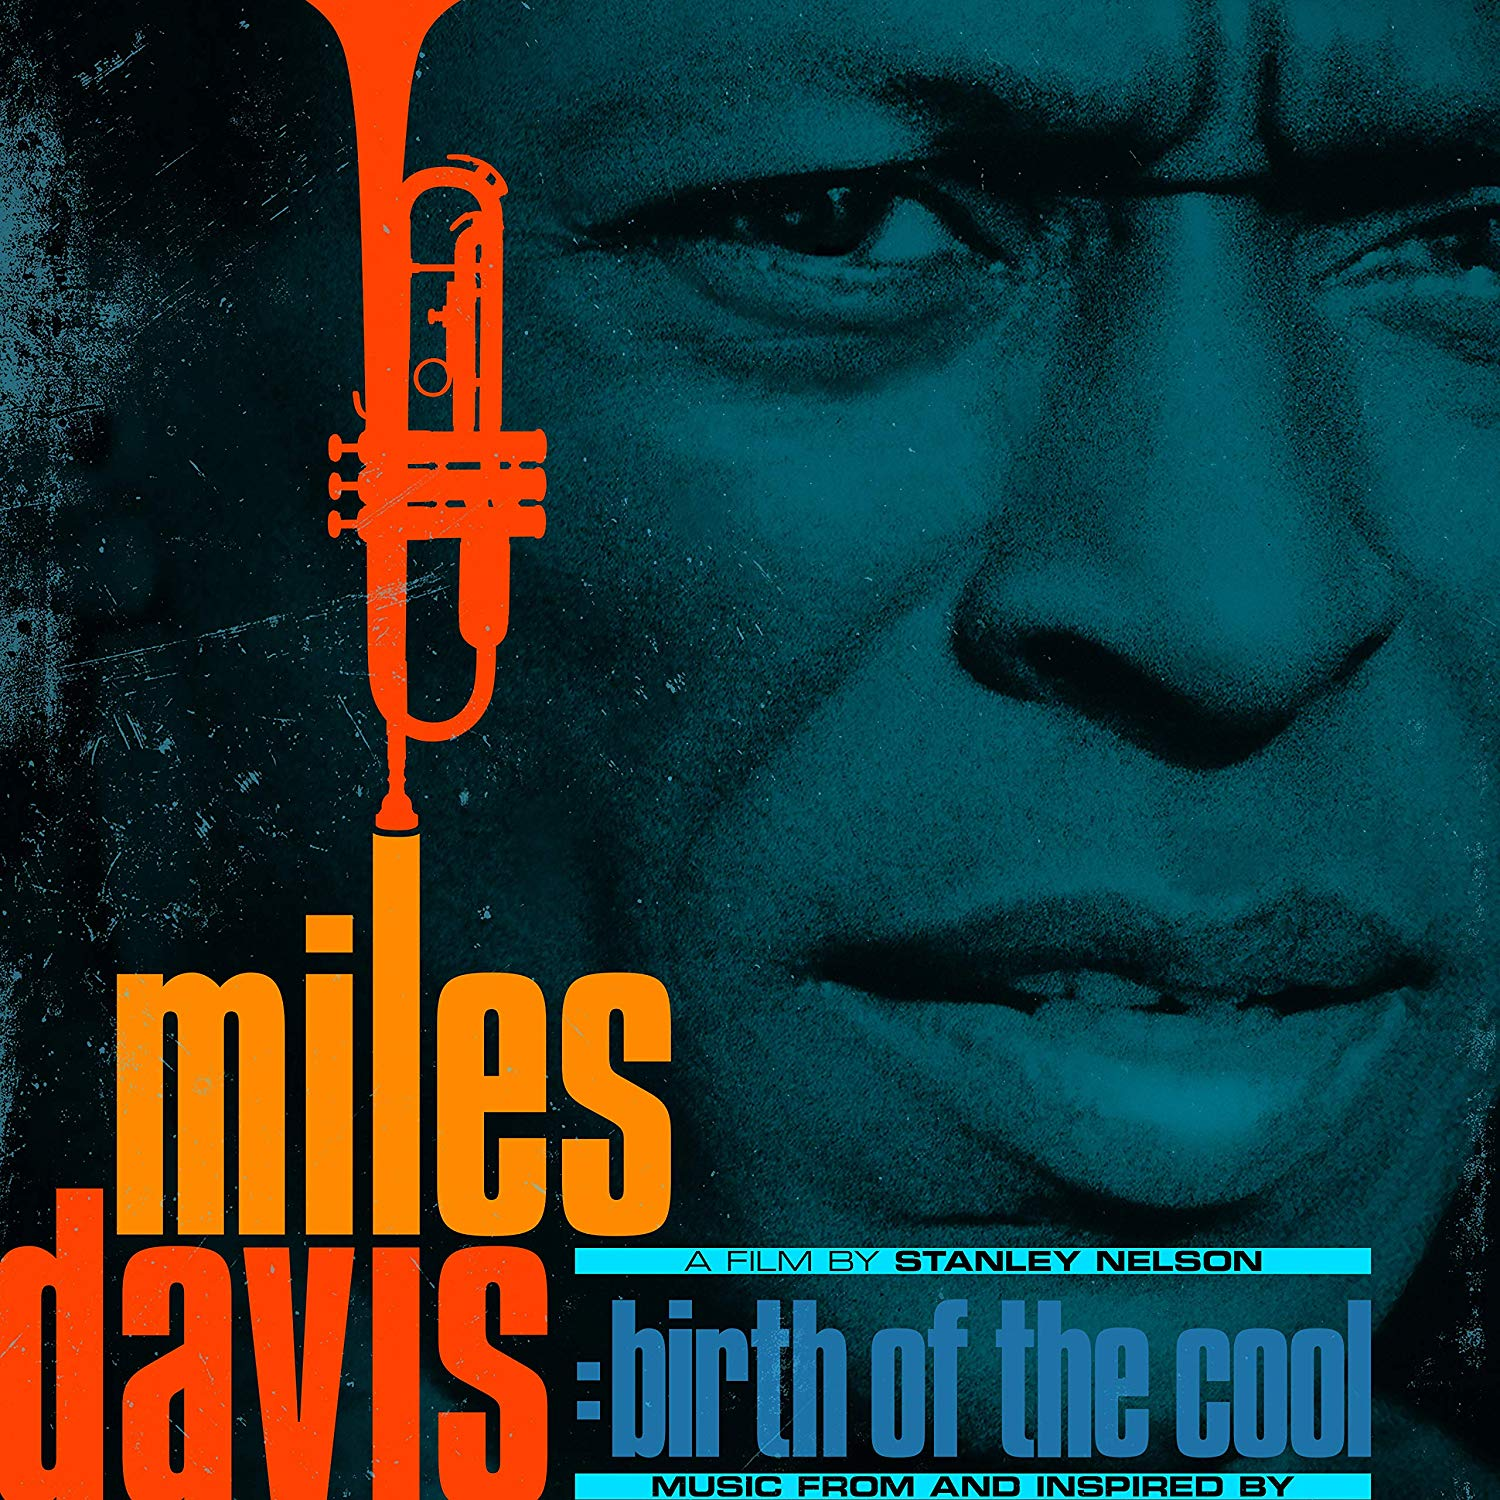 マイルス・デイビス『Music From And Inspired By Miles Davis: Birth Of The Cool』